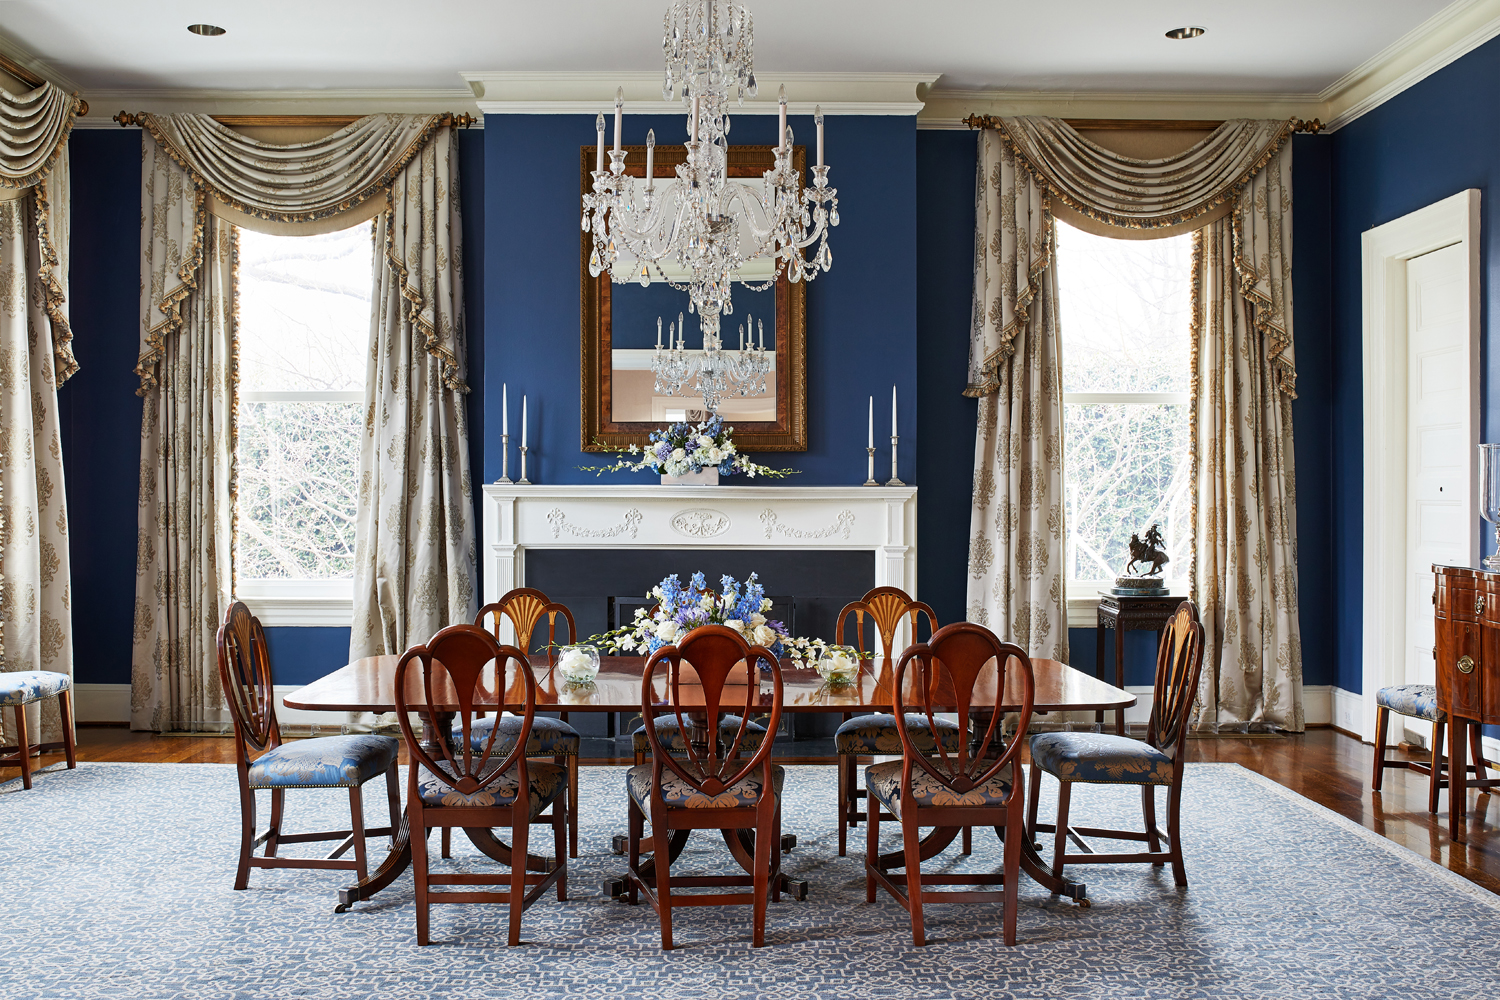 Interiors of the Vice President's newly remodeled residence in Washington, DC